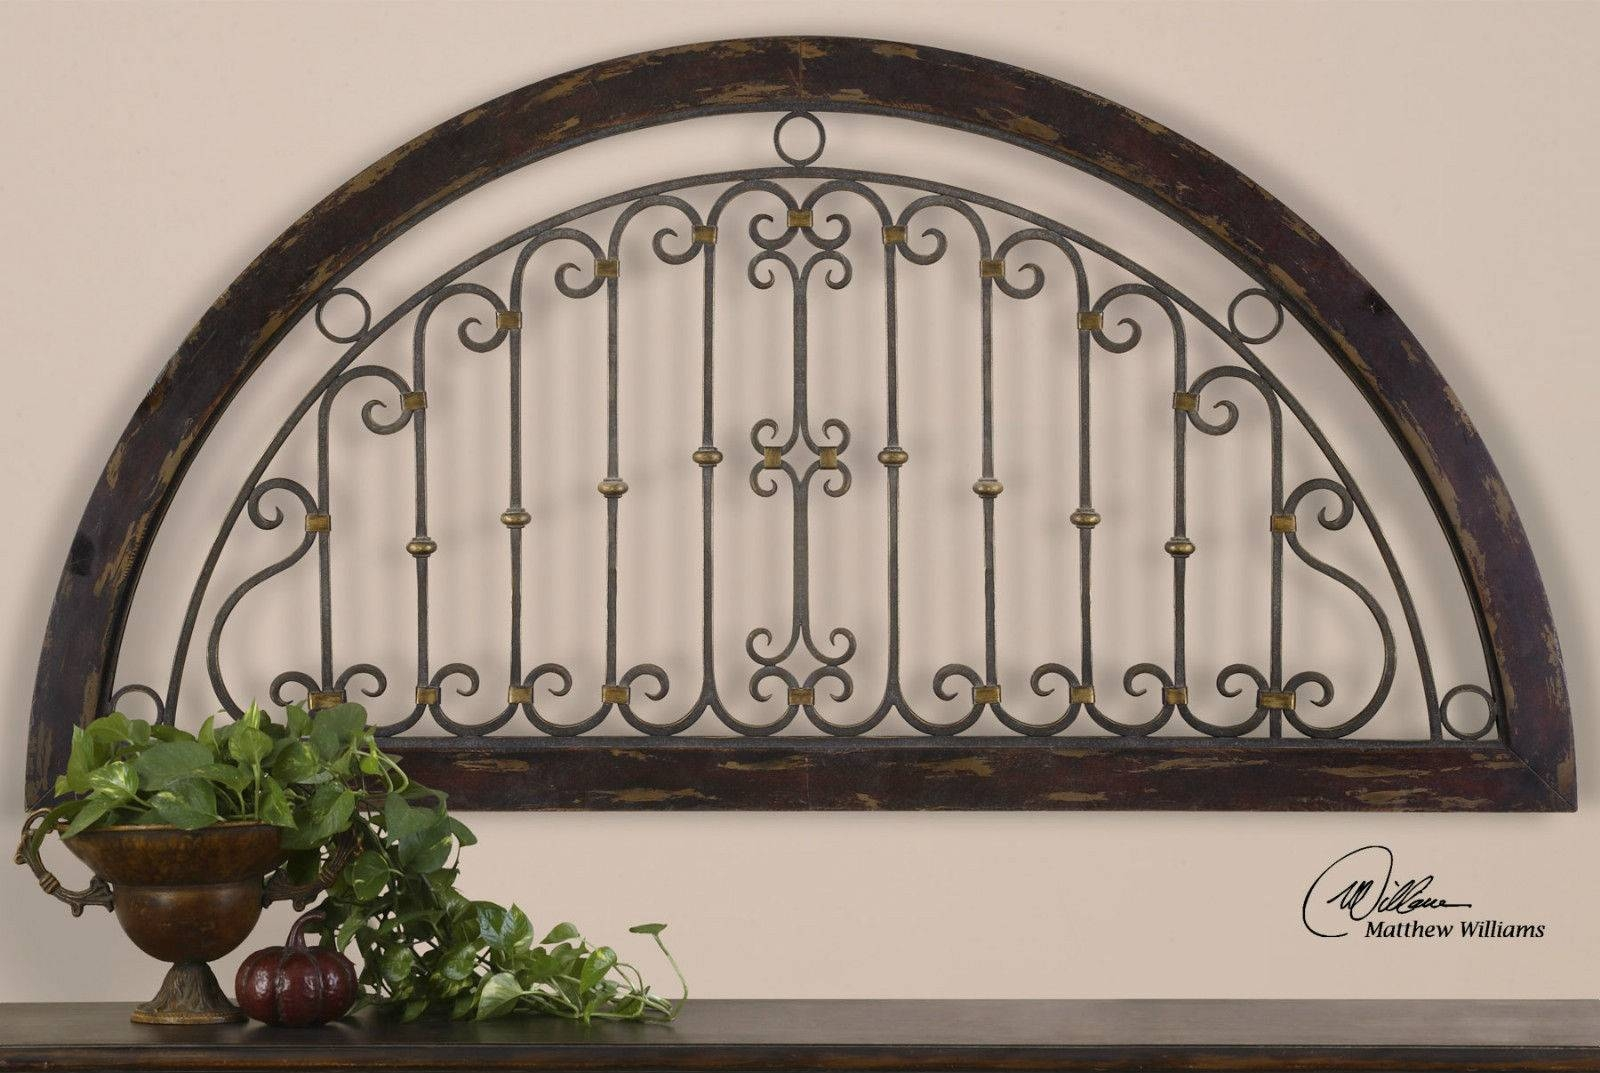 Rustic Metal Wall Decor With Regard To Most Up To Date Rustic Metal Wall Art (View 20 of 20)